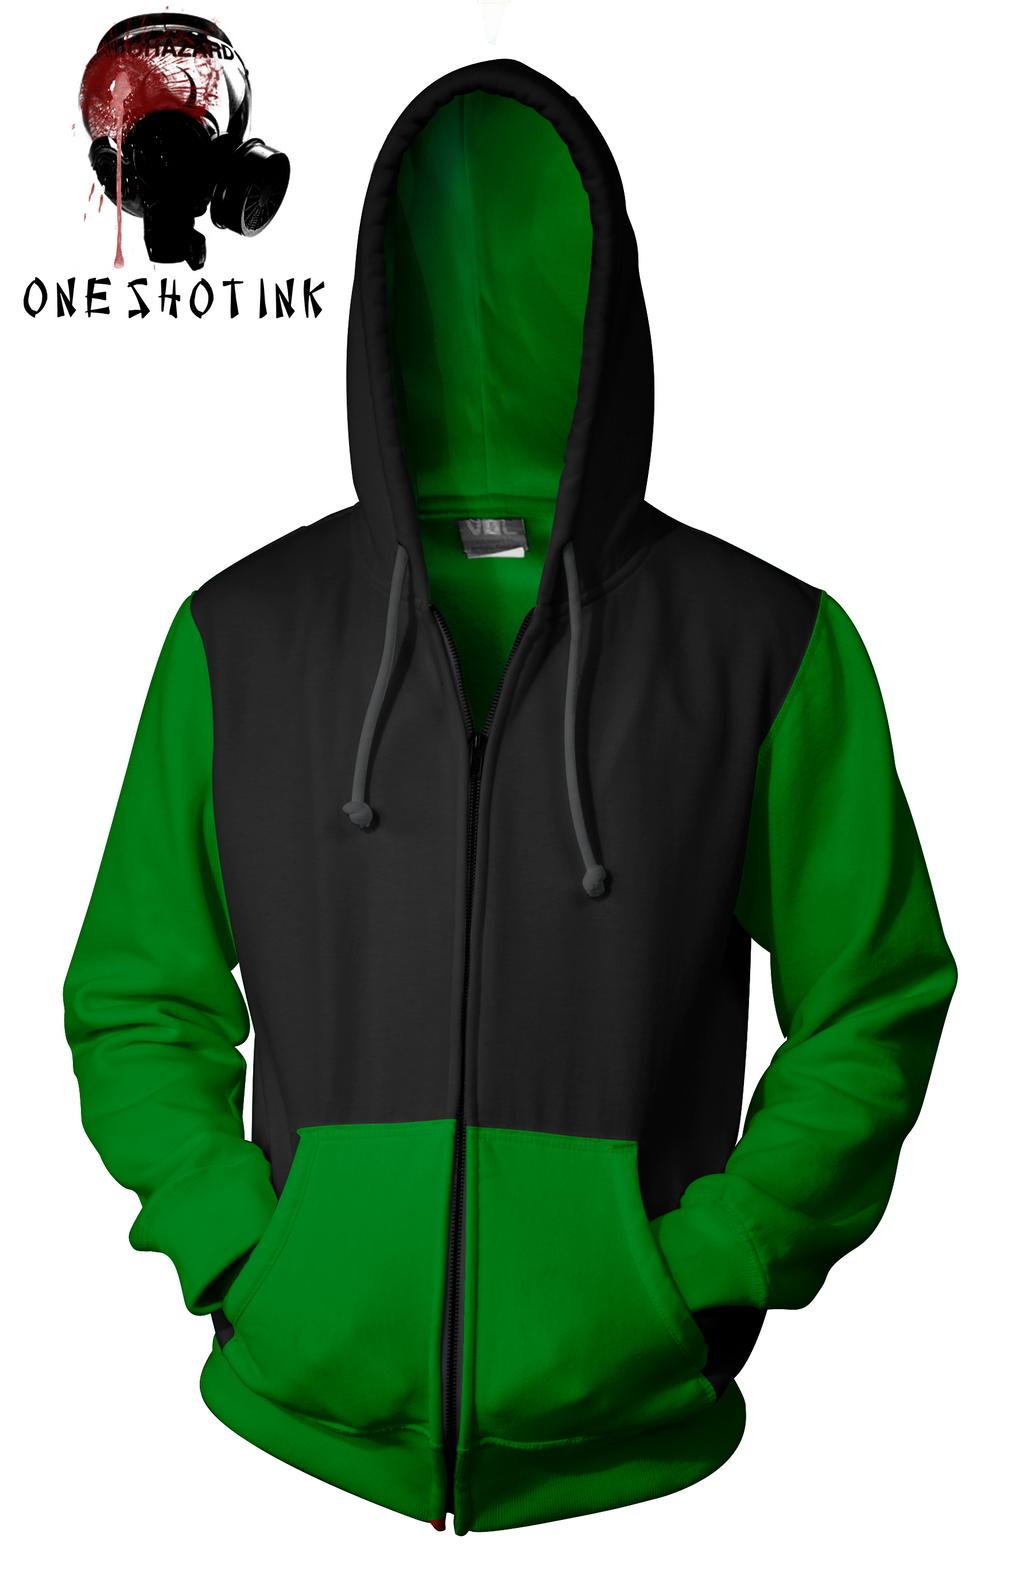 Black And Green Hoodie by karatealive on DeviantArt